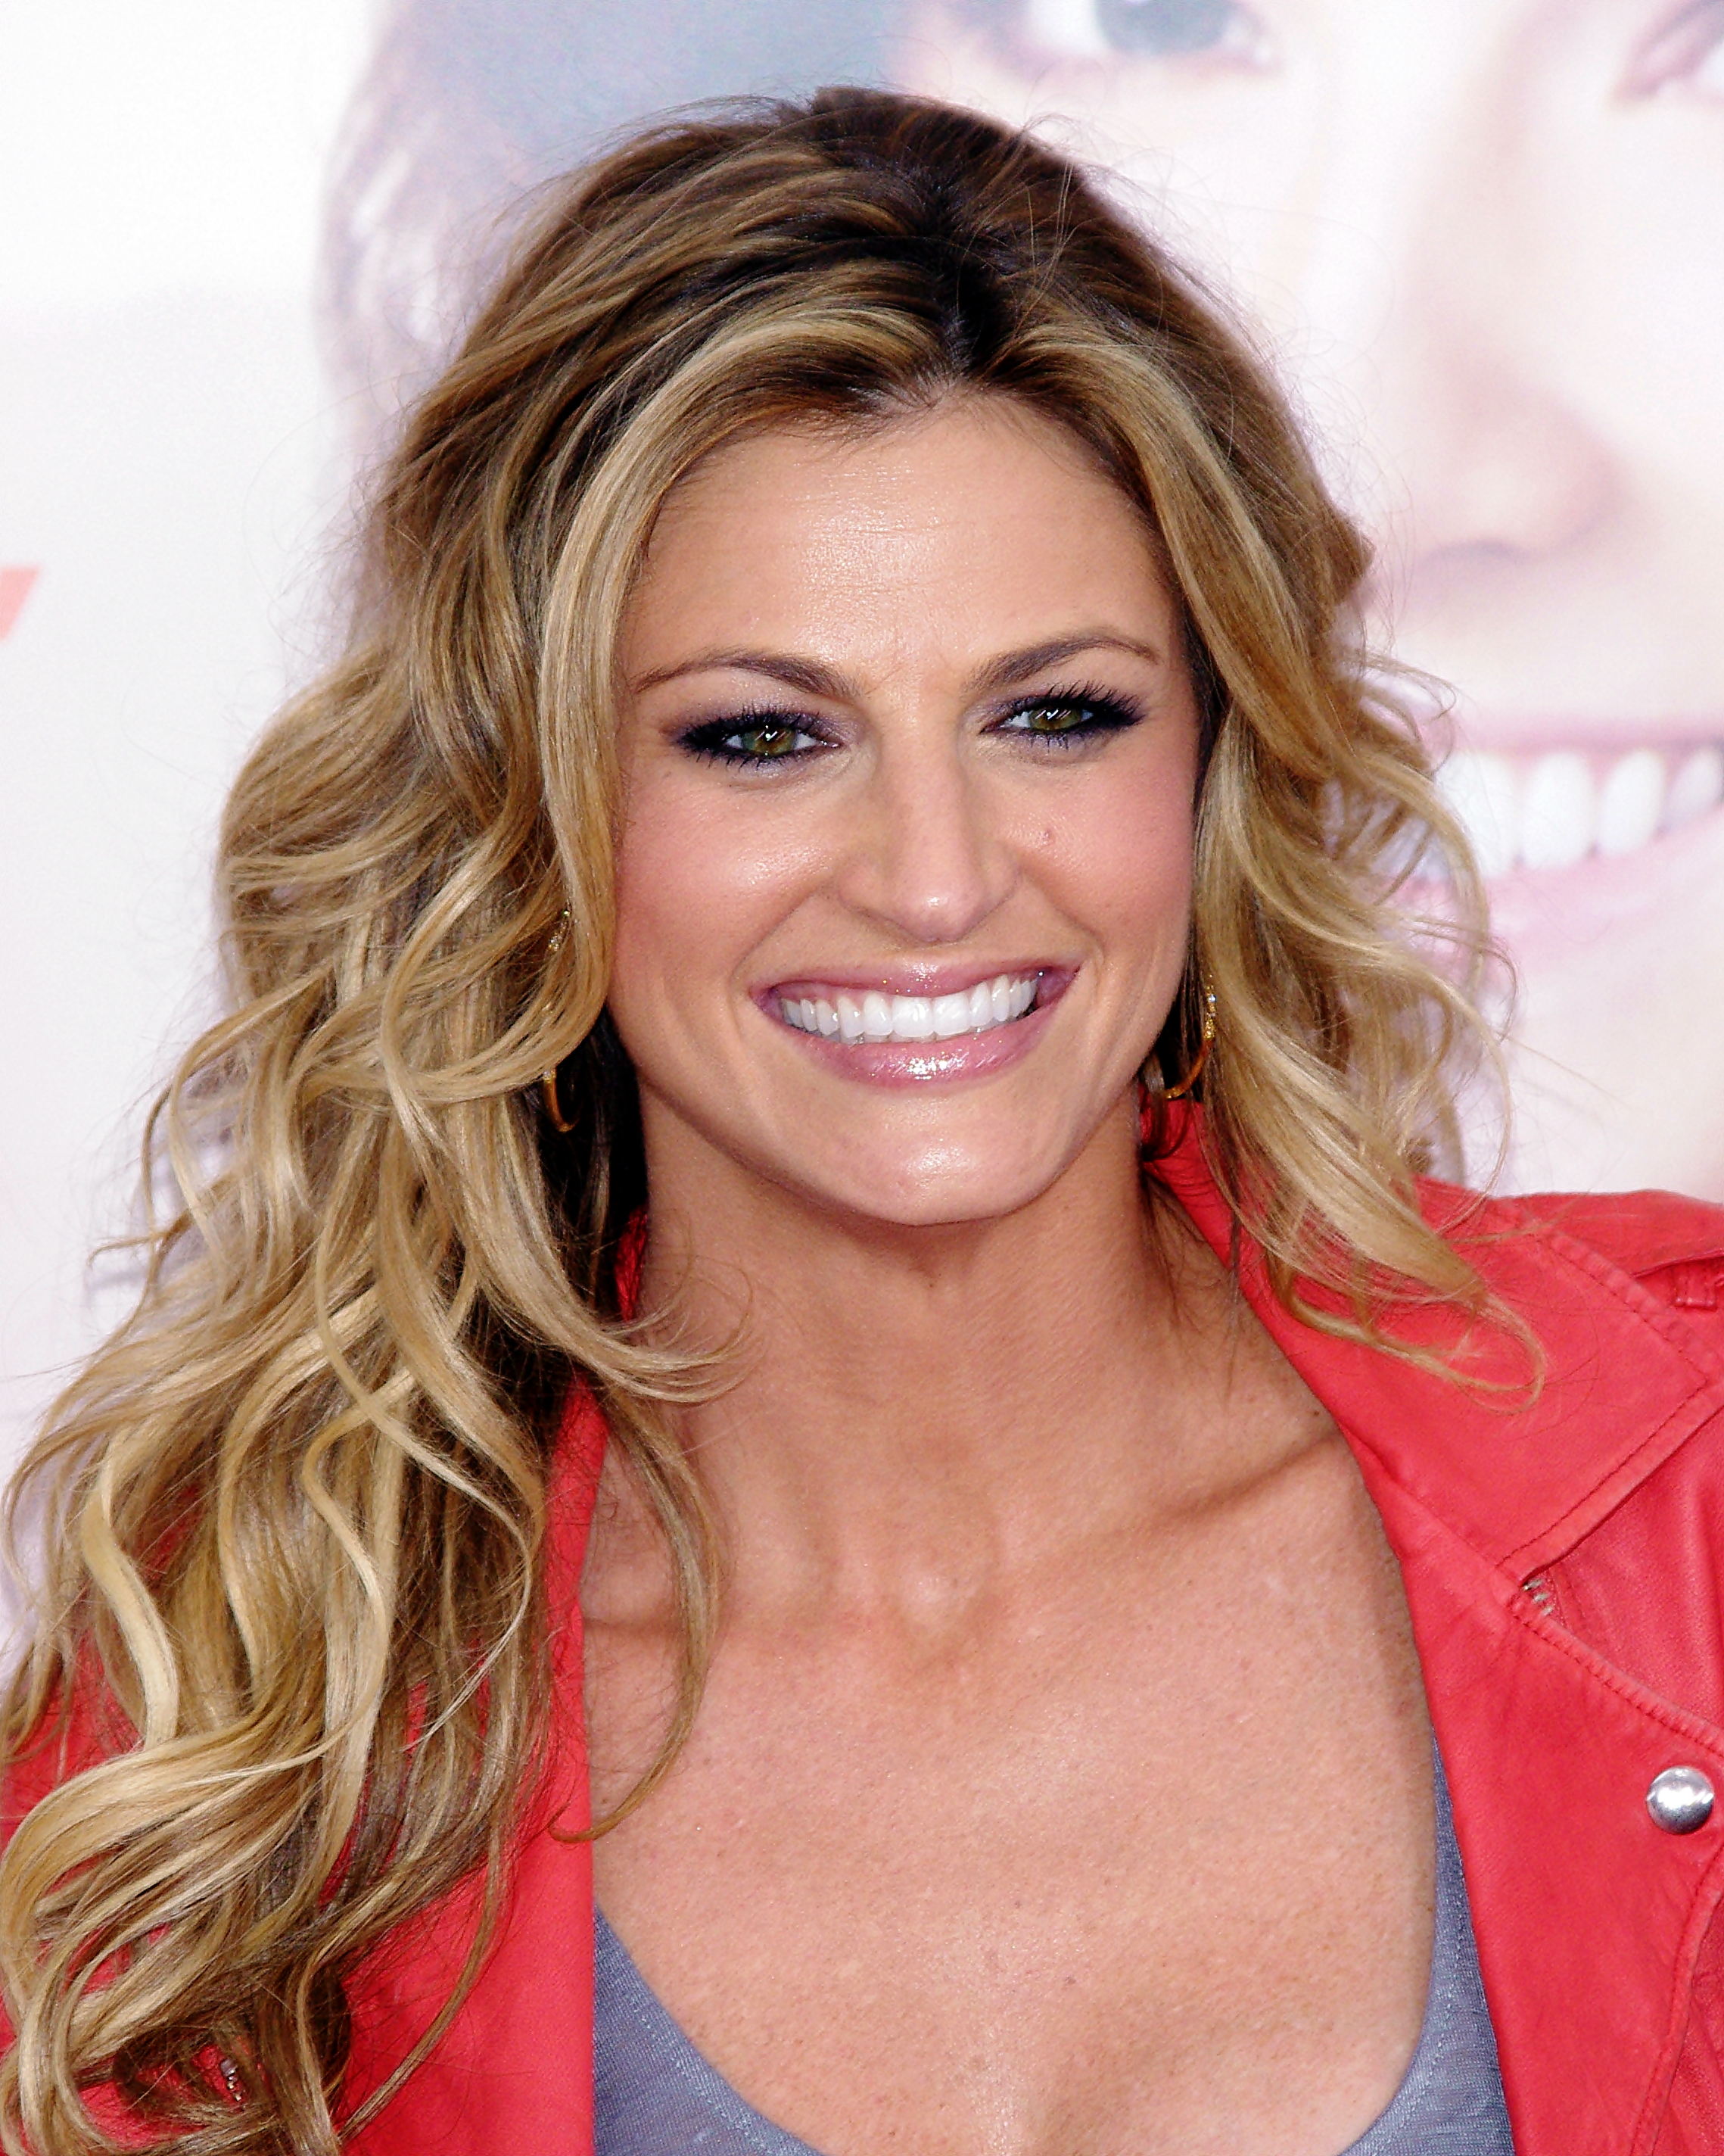 Erin Andrews earned a  million dollar salary, leaving the net worth at 3 million in 2017